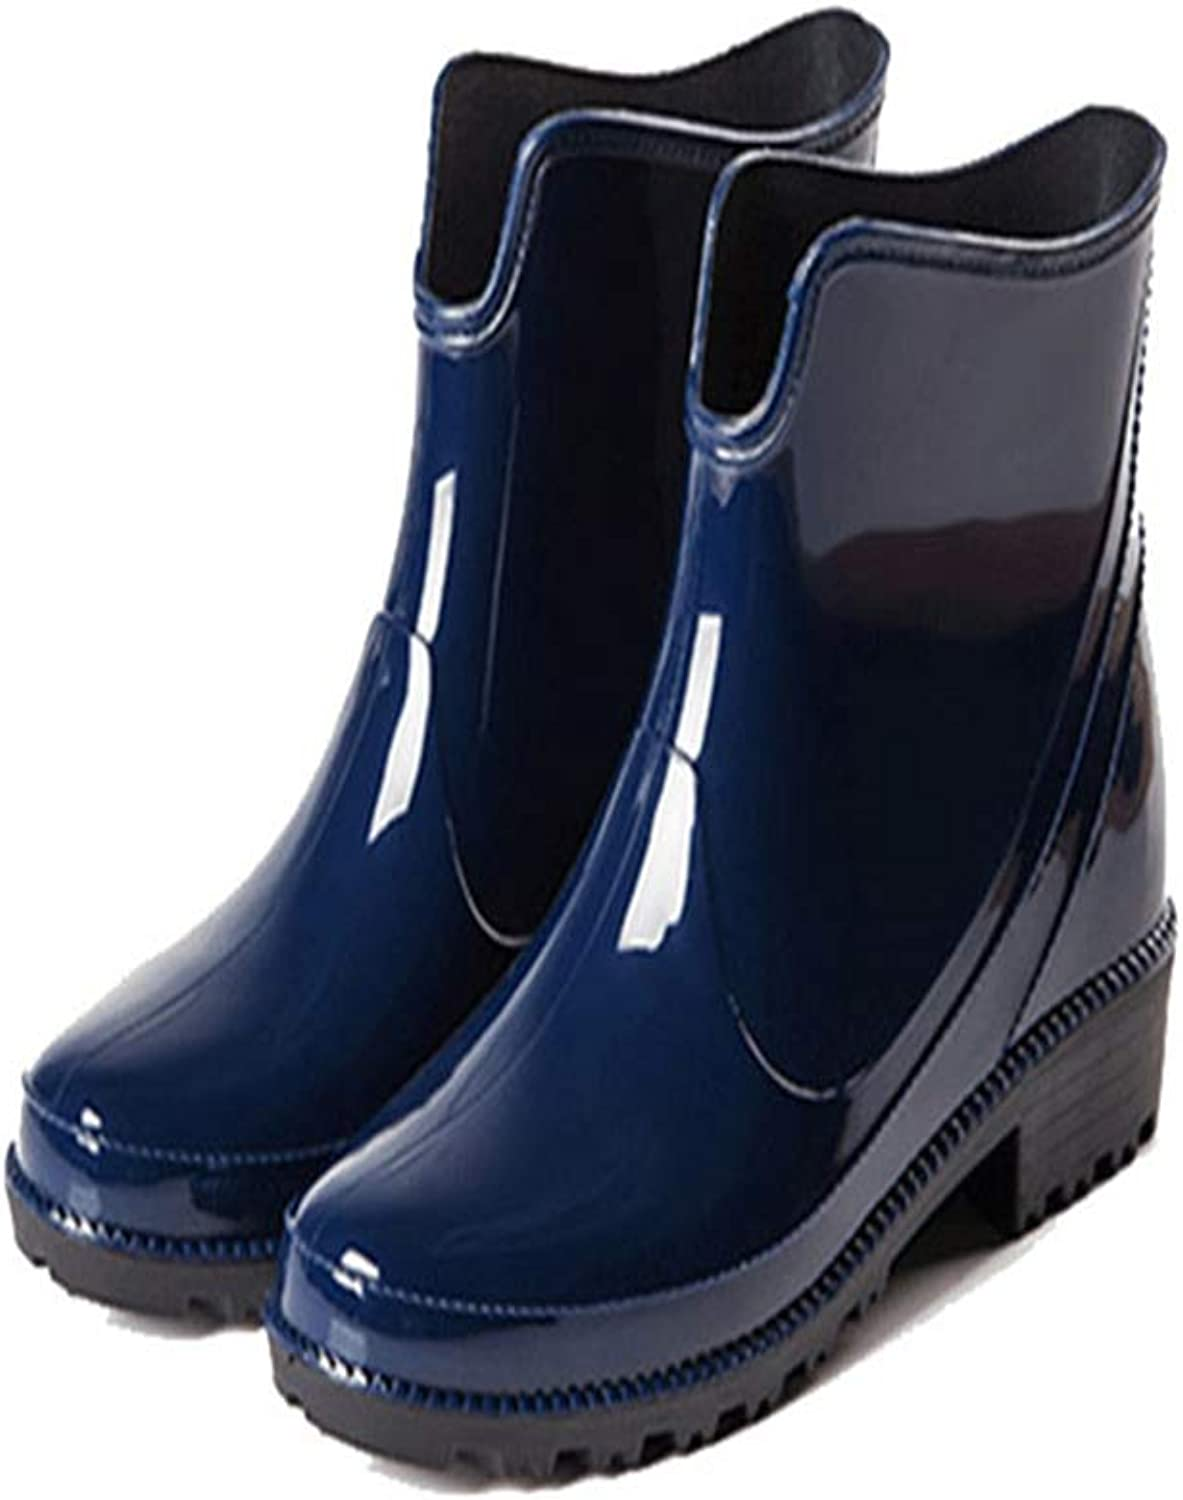 Quality.A Women's Short rain Boots Waterproof Rubber shoes Water shoes